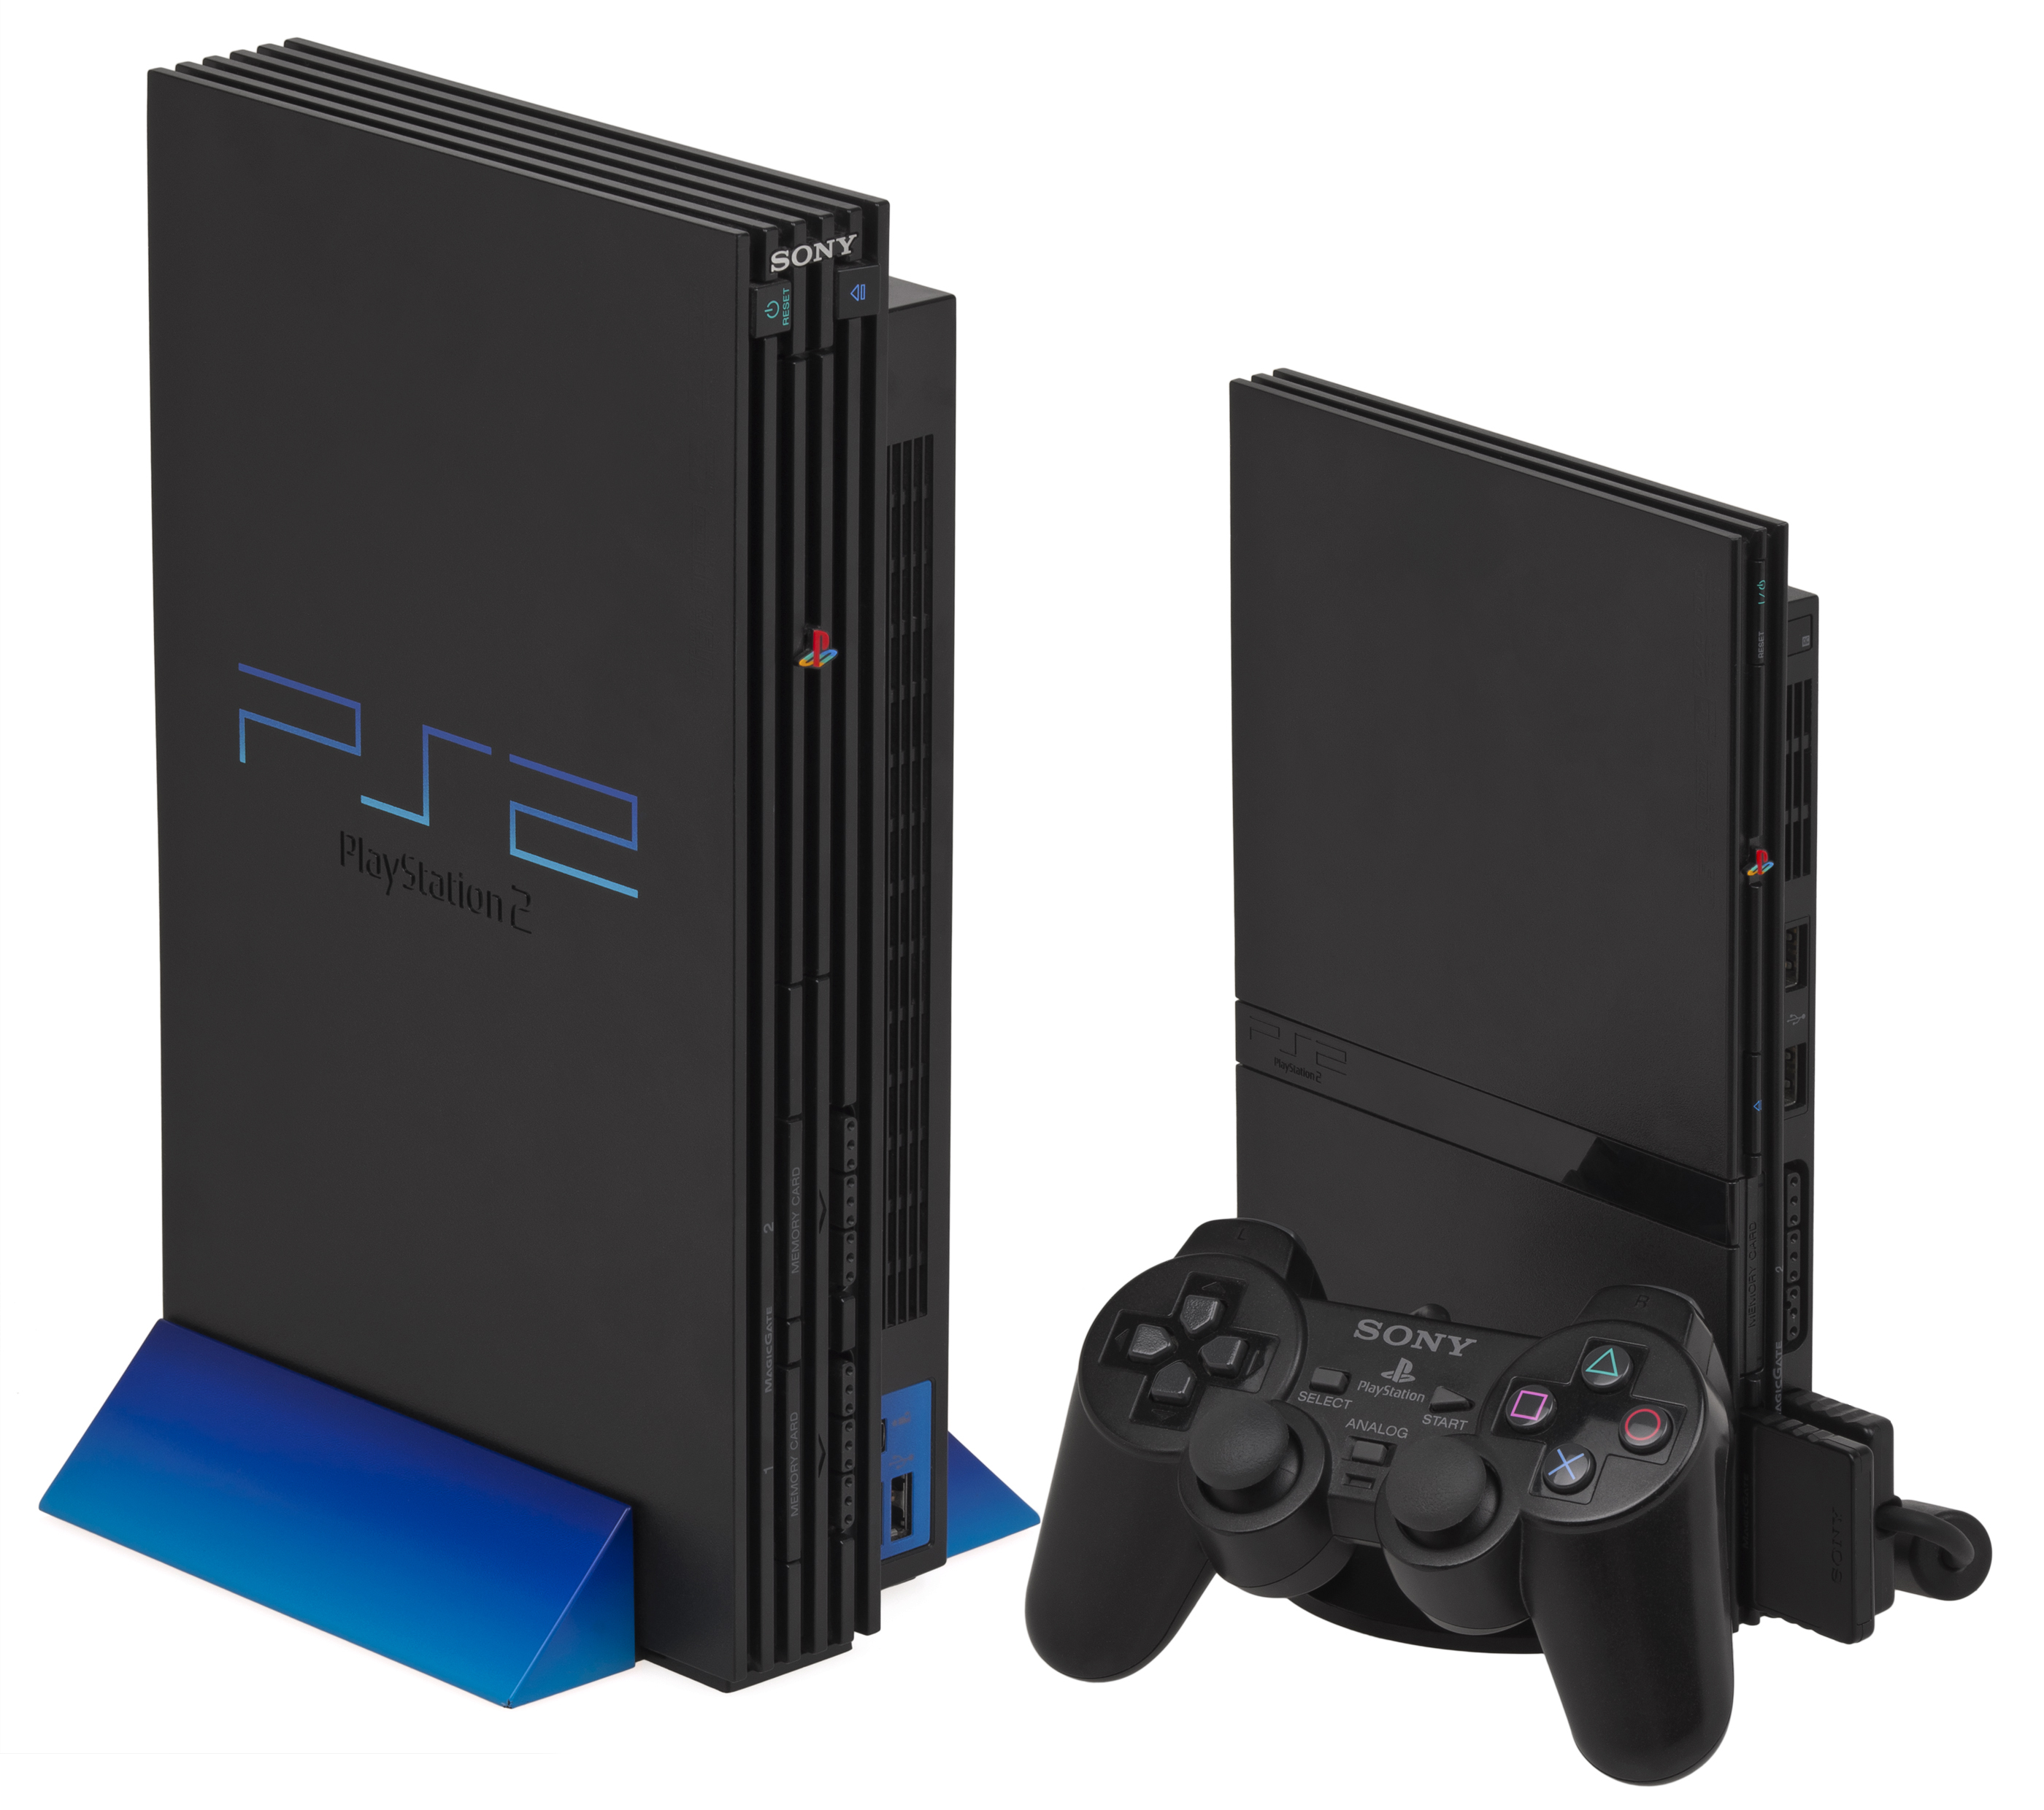 sony playstation 2 slim. ps2-versions.jpg sony playstation 2 slim